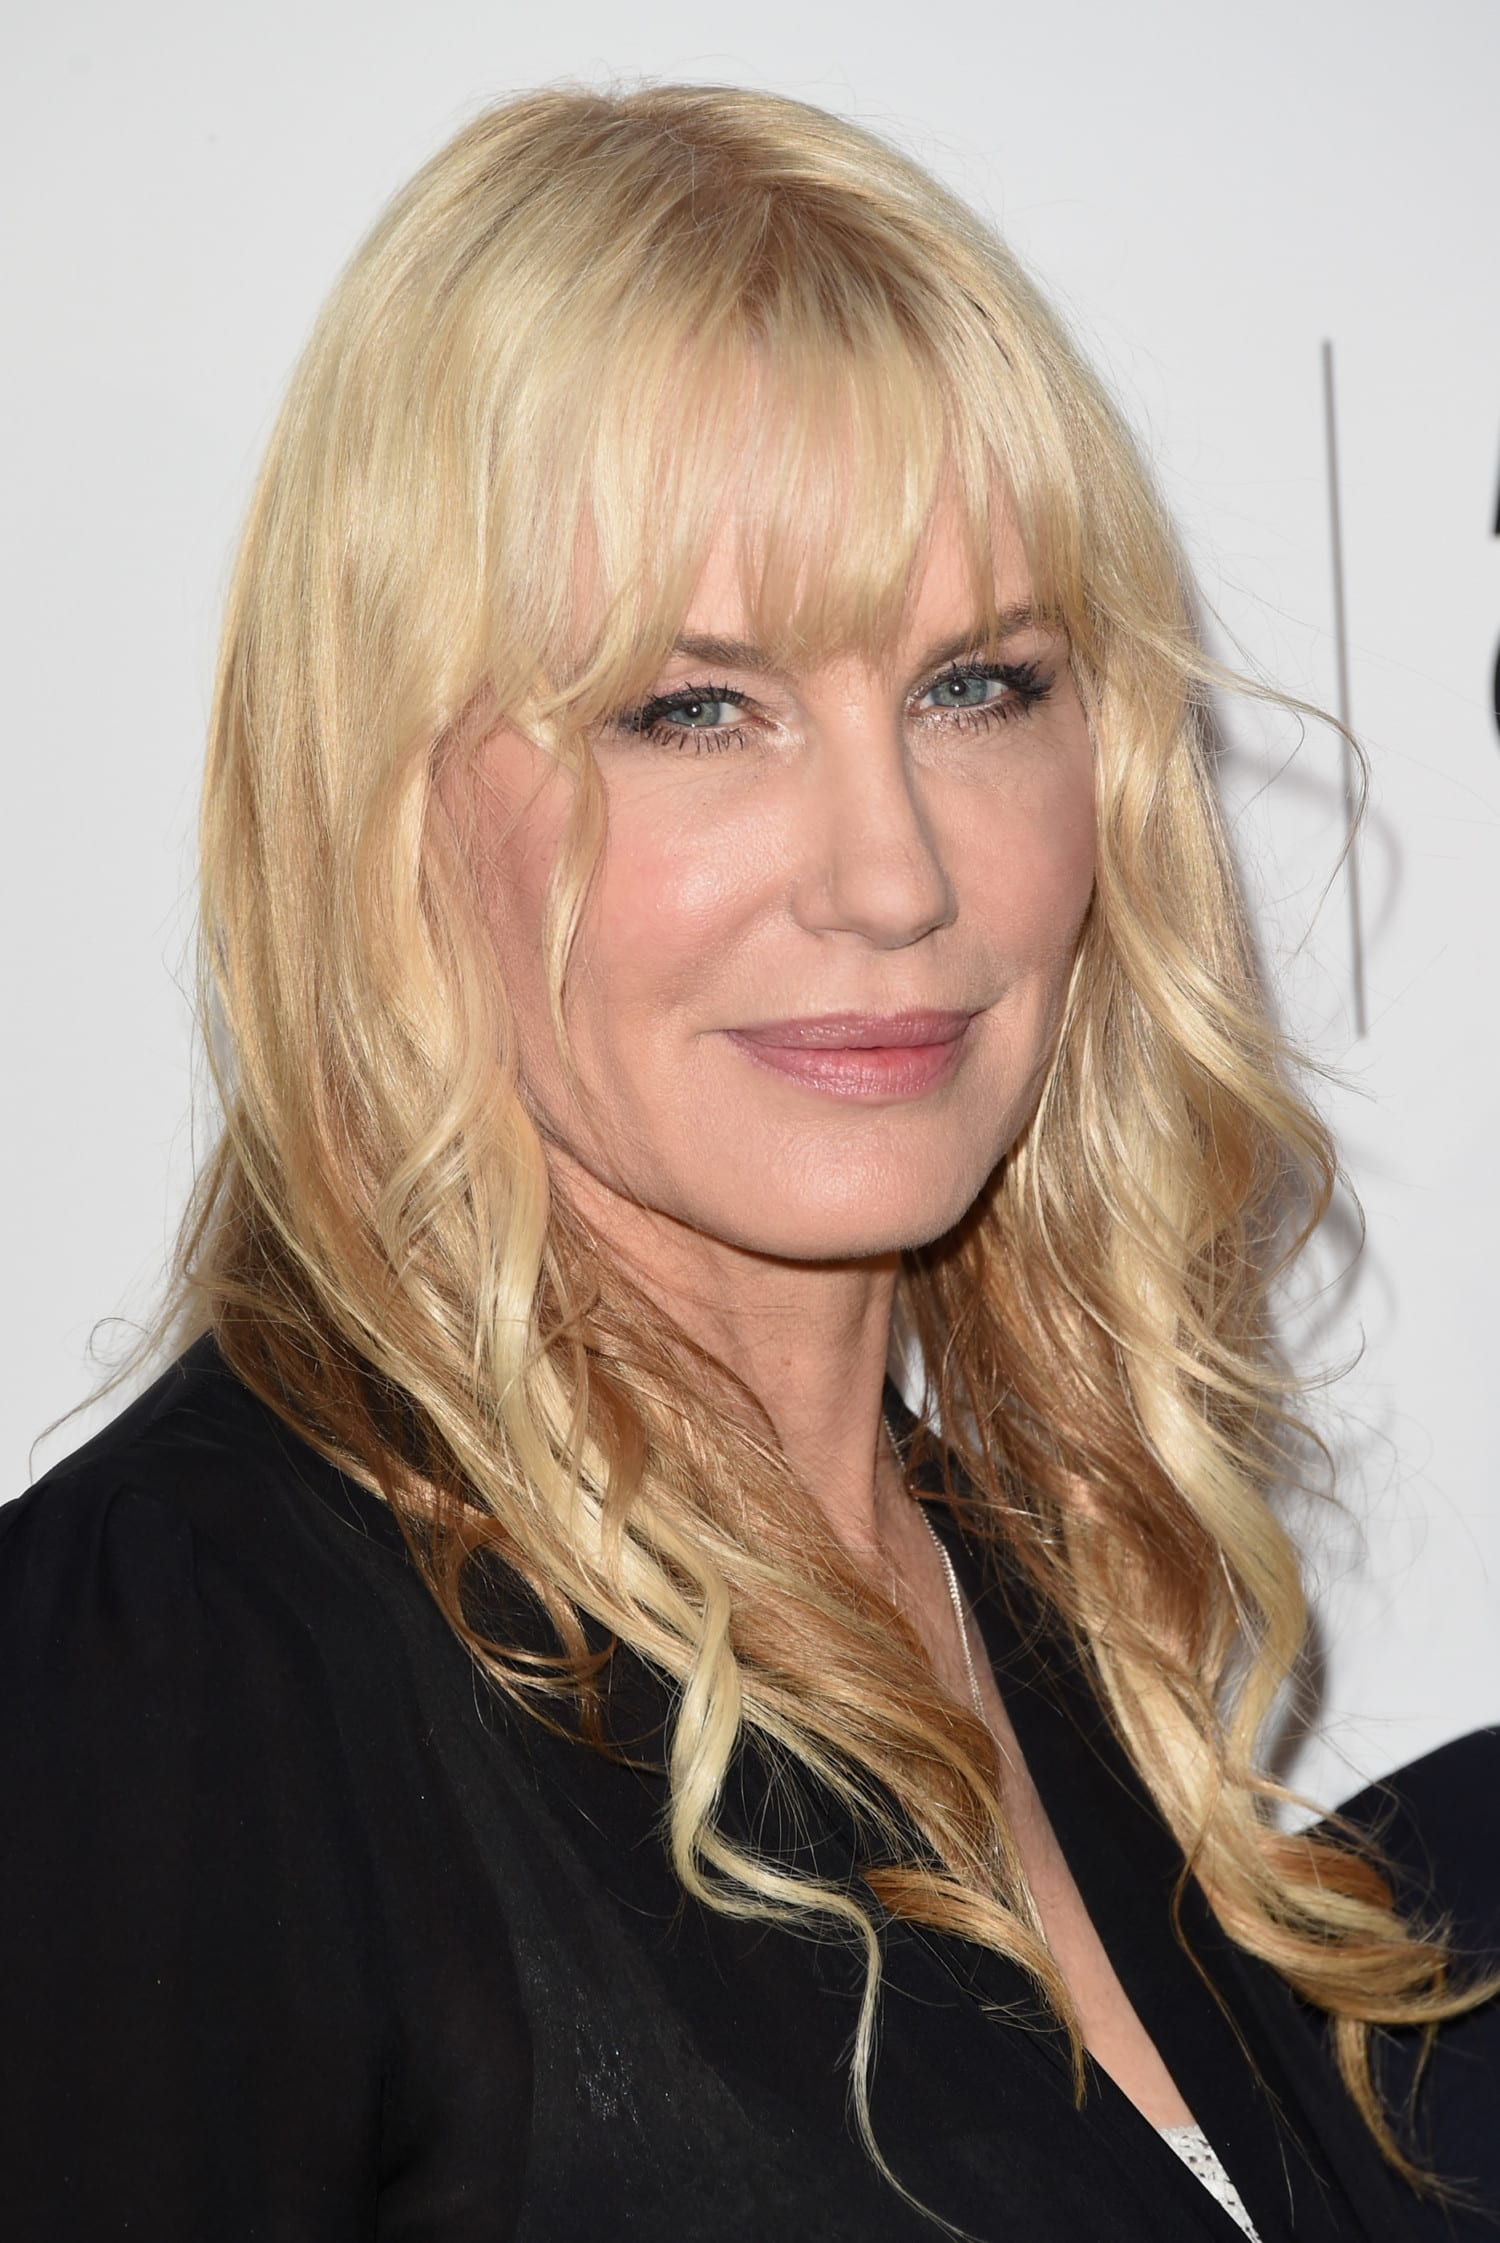 Nude Pictures Of Daryl Hannah